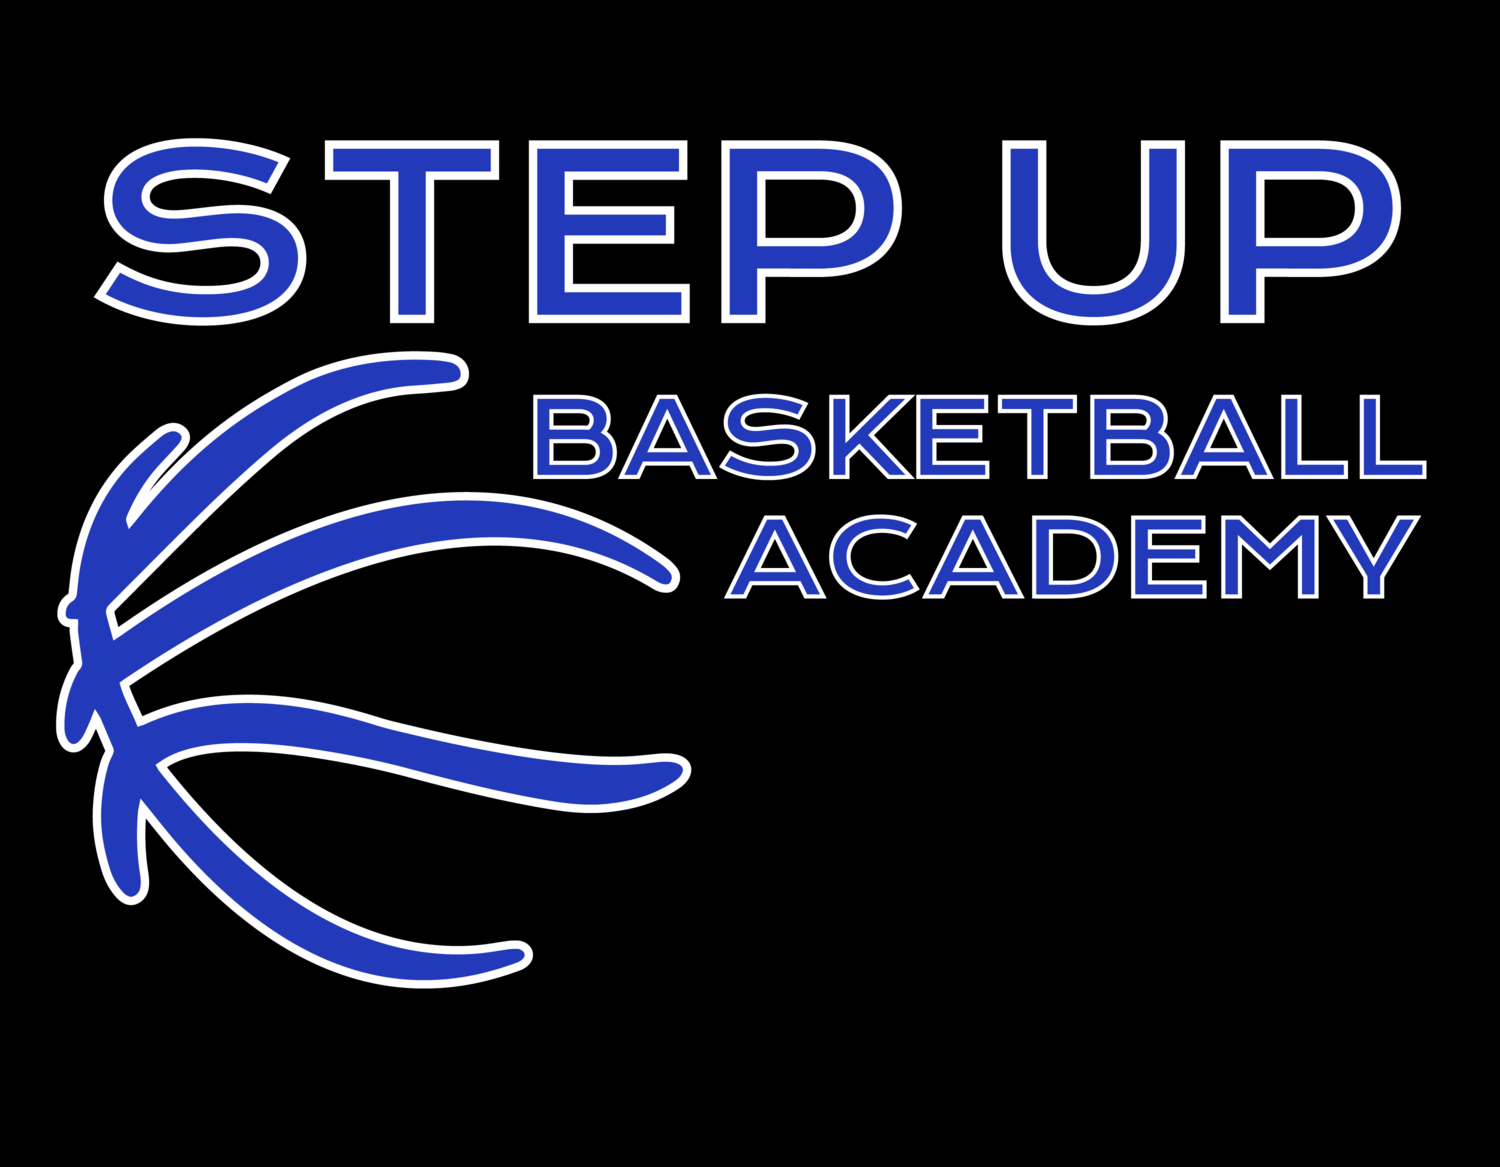 Step Up Basketball Academy